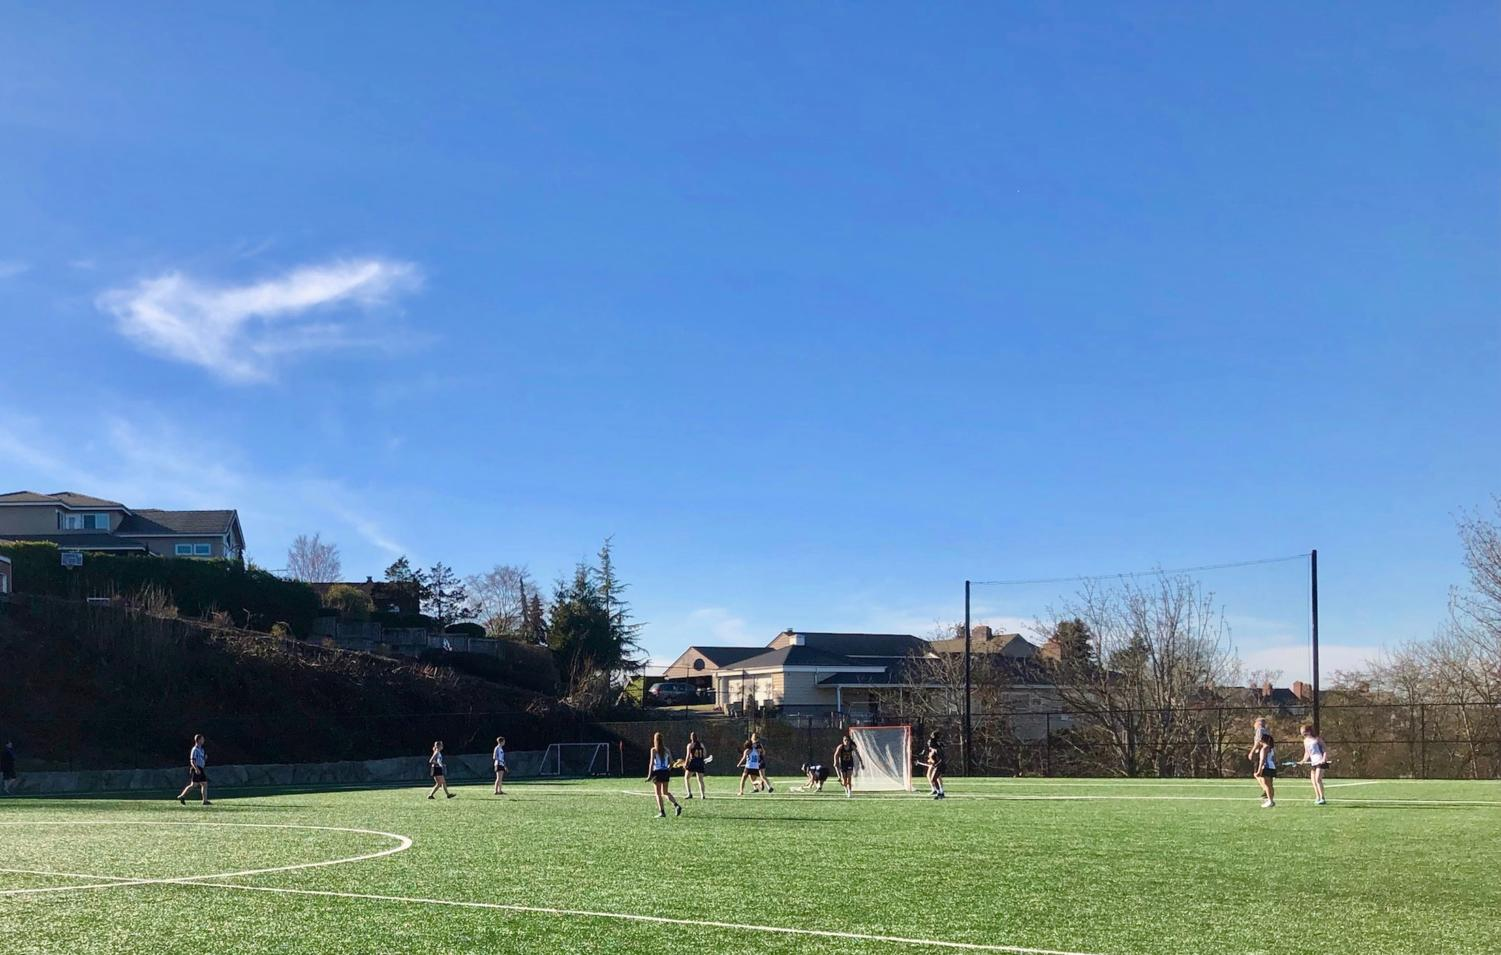 USG plays their first lacrosse game ever at the home James Memorial Field today.